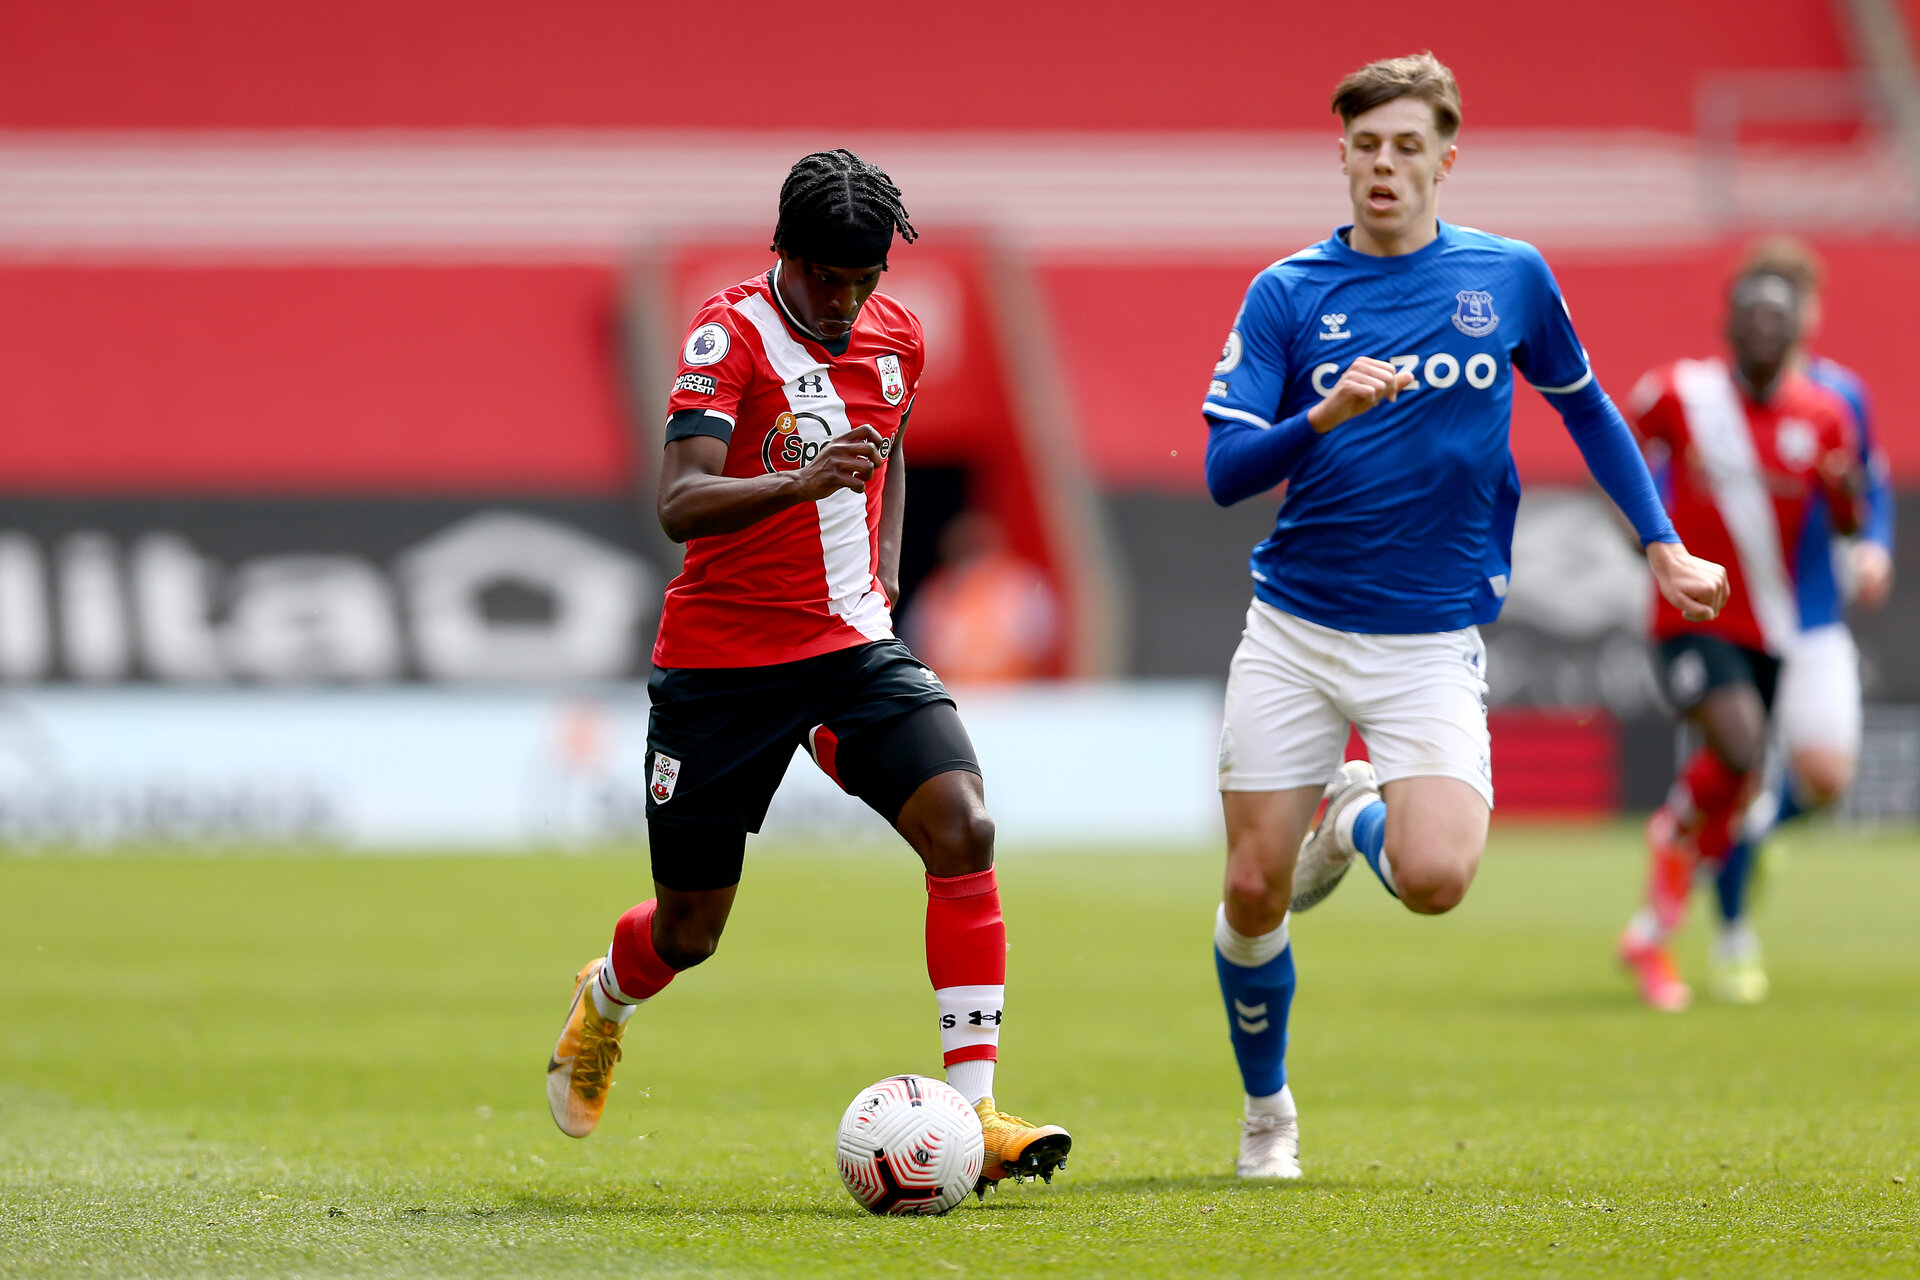 SOUTHAMPTON, ENGLAND - MAY 02:  during the Premier League 2 match between Southampton B Team and Everton at the St Mayr's Stadium on May 02, 2021 in Southampton, England.  (Photo by Isabelle Field/Southampton FC via Getty Images)